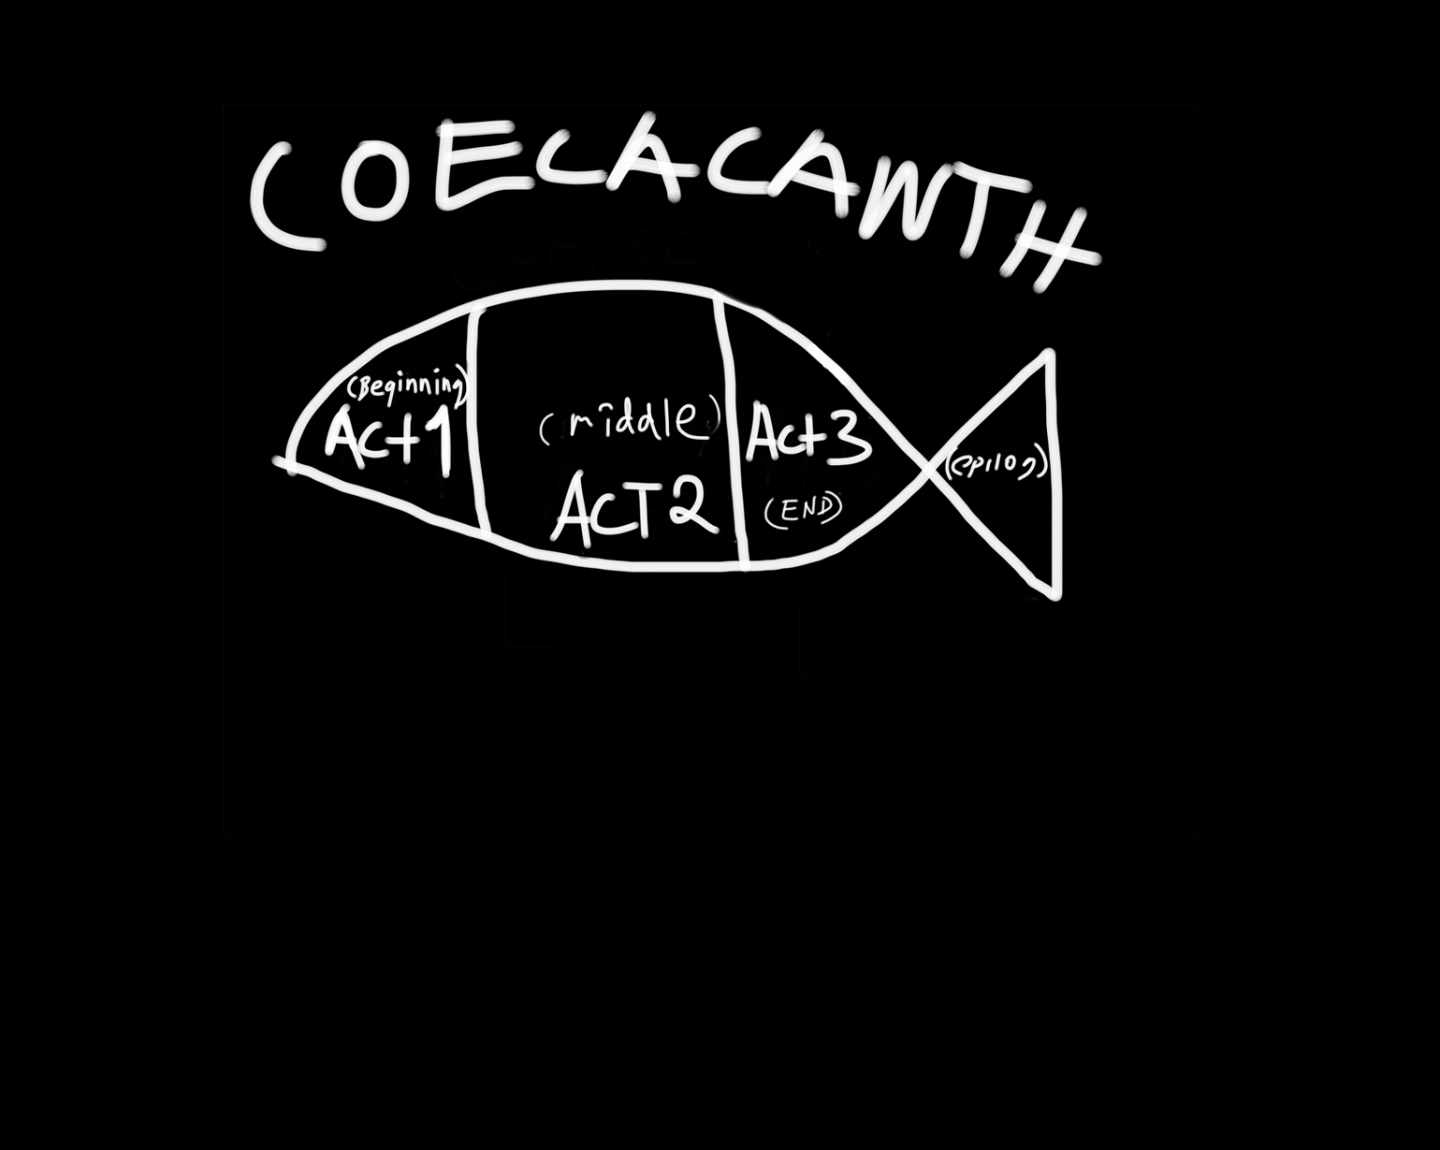 Coelacanth  [see,lu-canth]